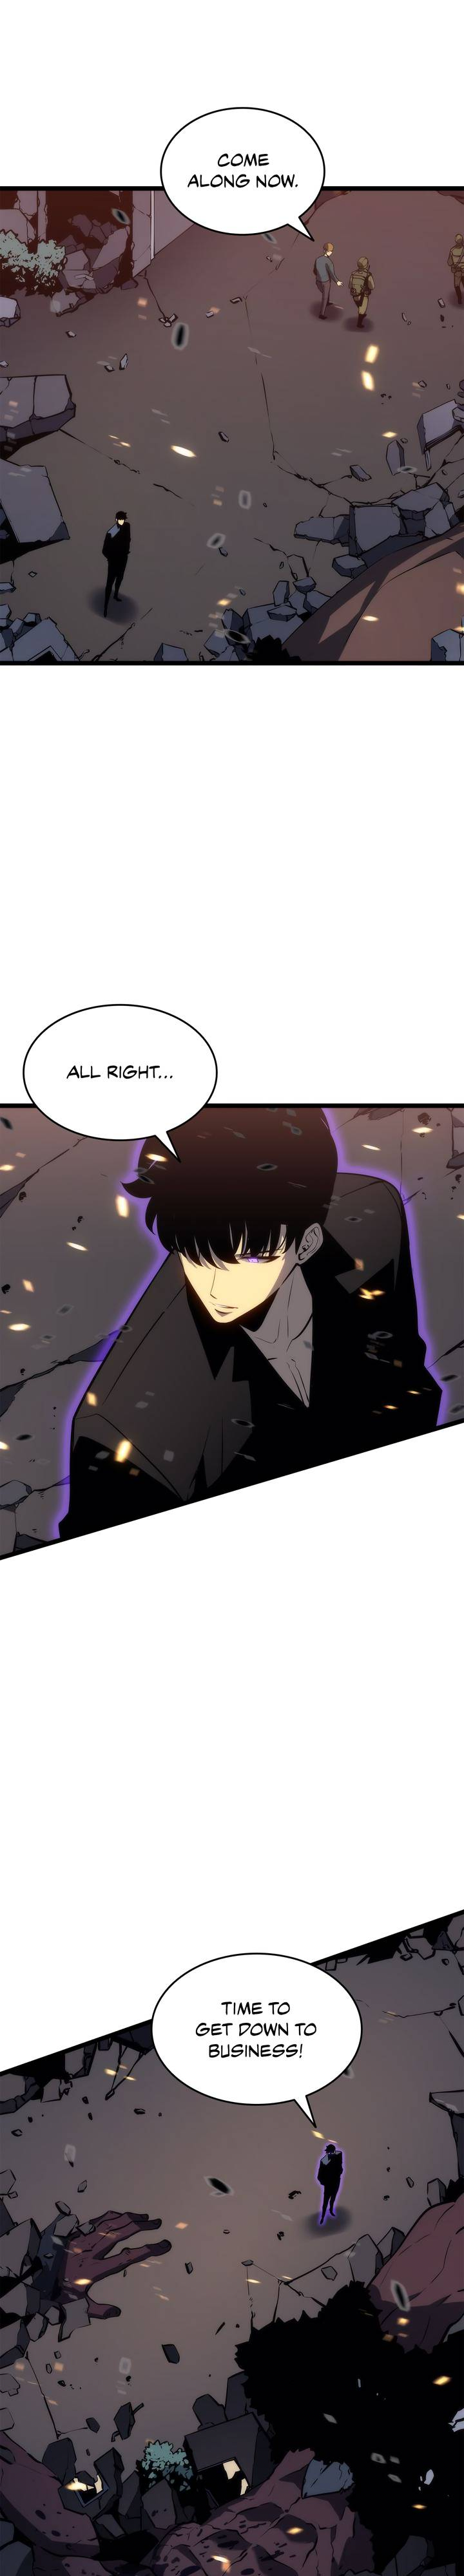 Solo Leveling Chapter 134 Page 34